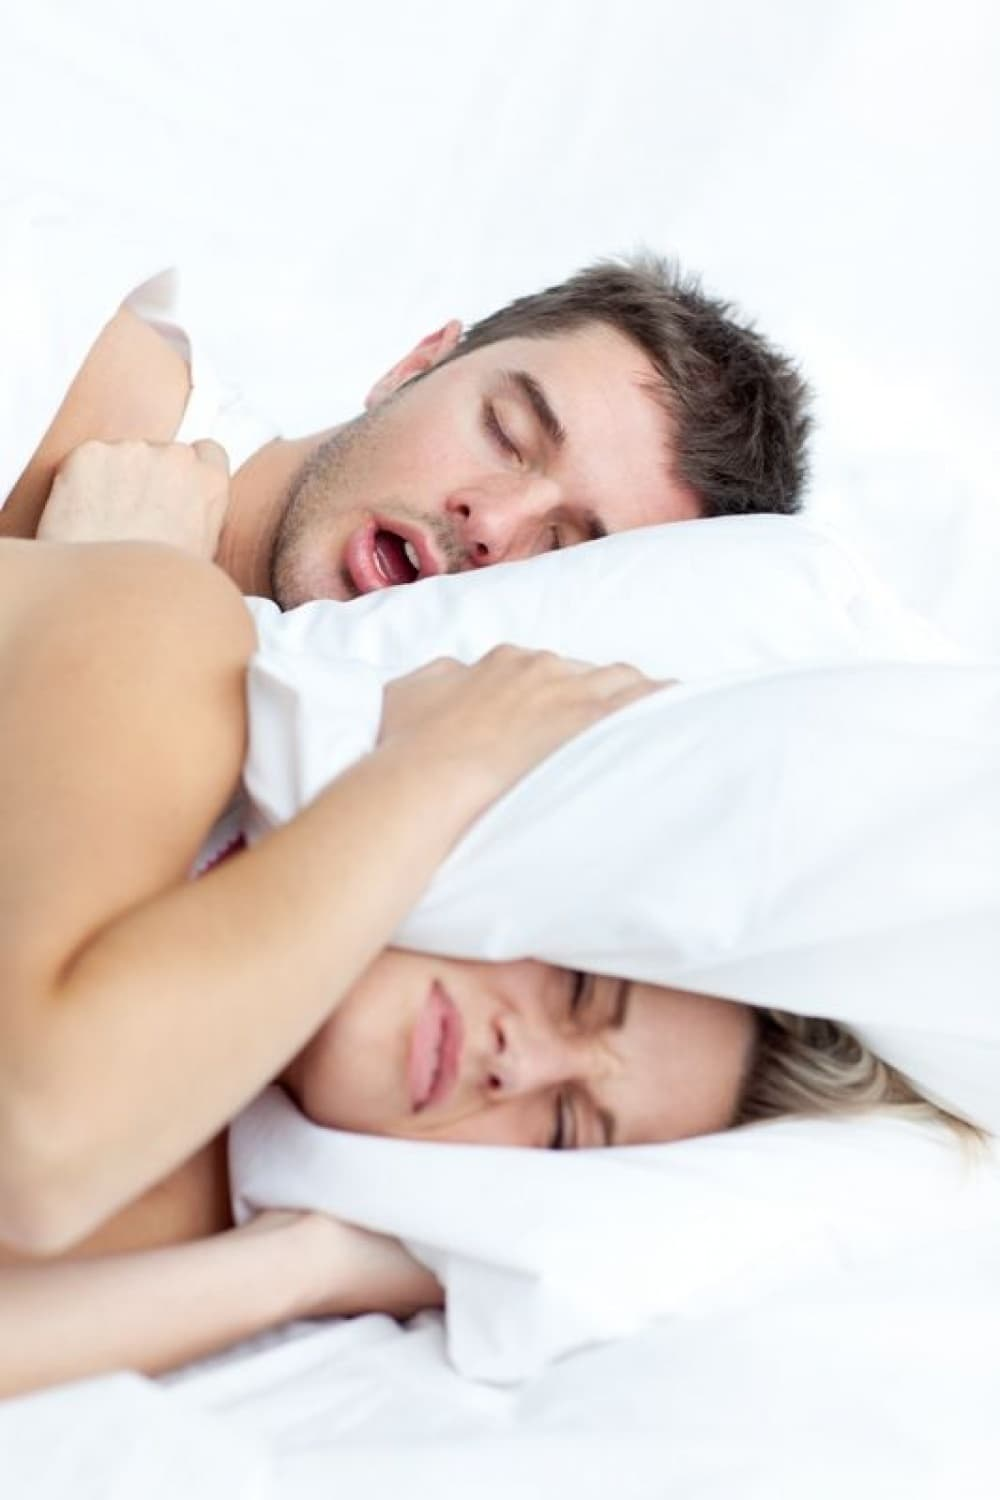 Reduction / Removal of snoring